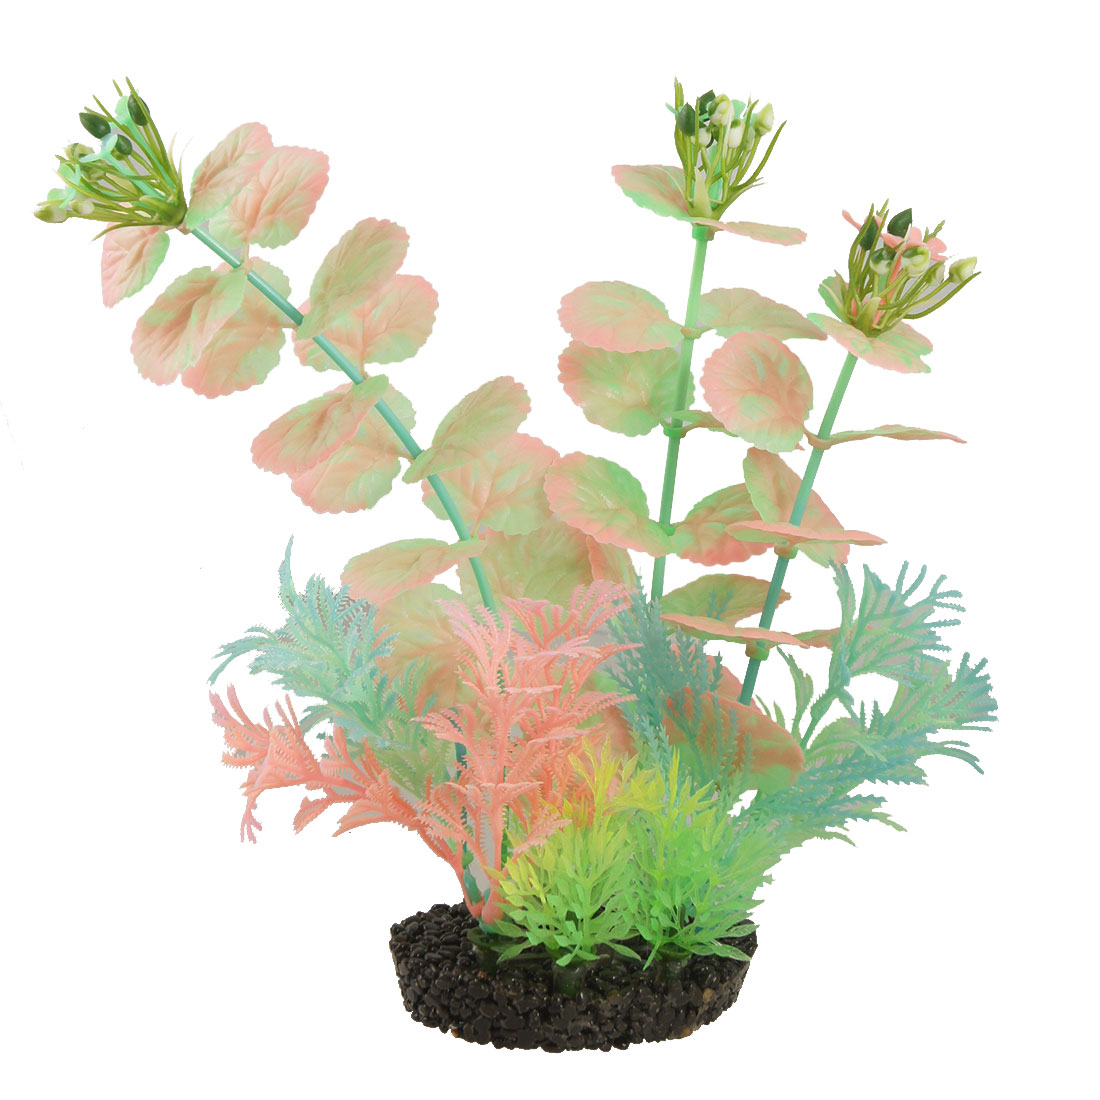 Fluorescent Plastic Plants Aquarium Fish Tank Ornament w Base